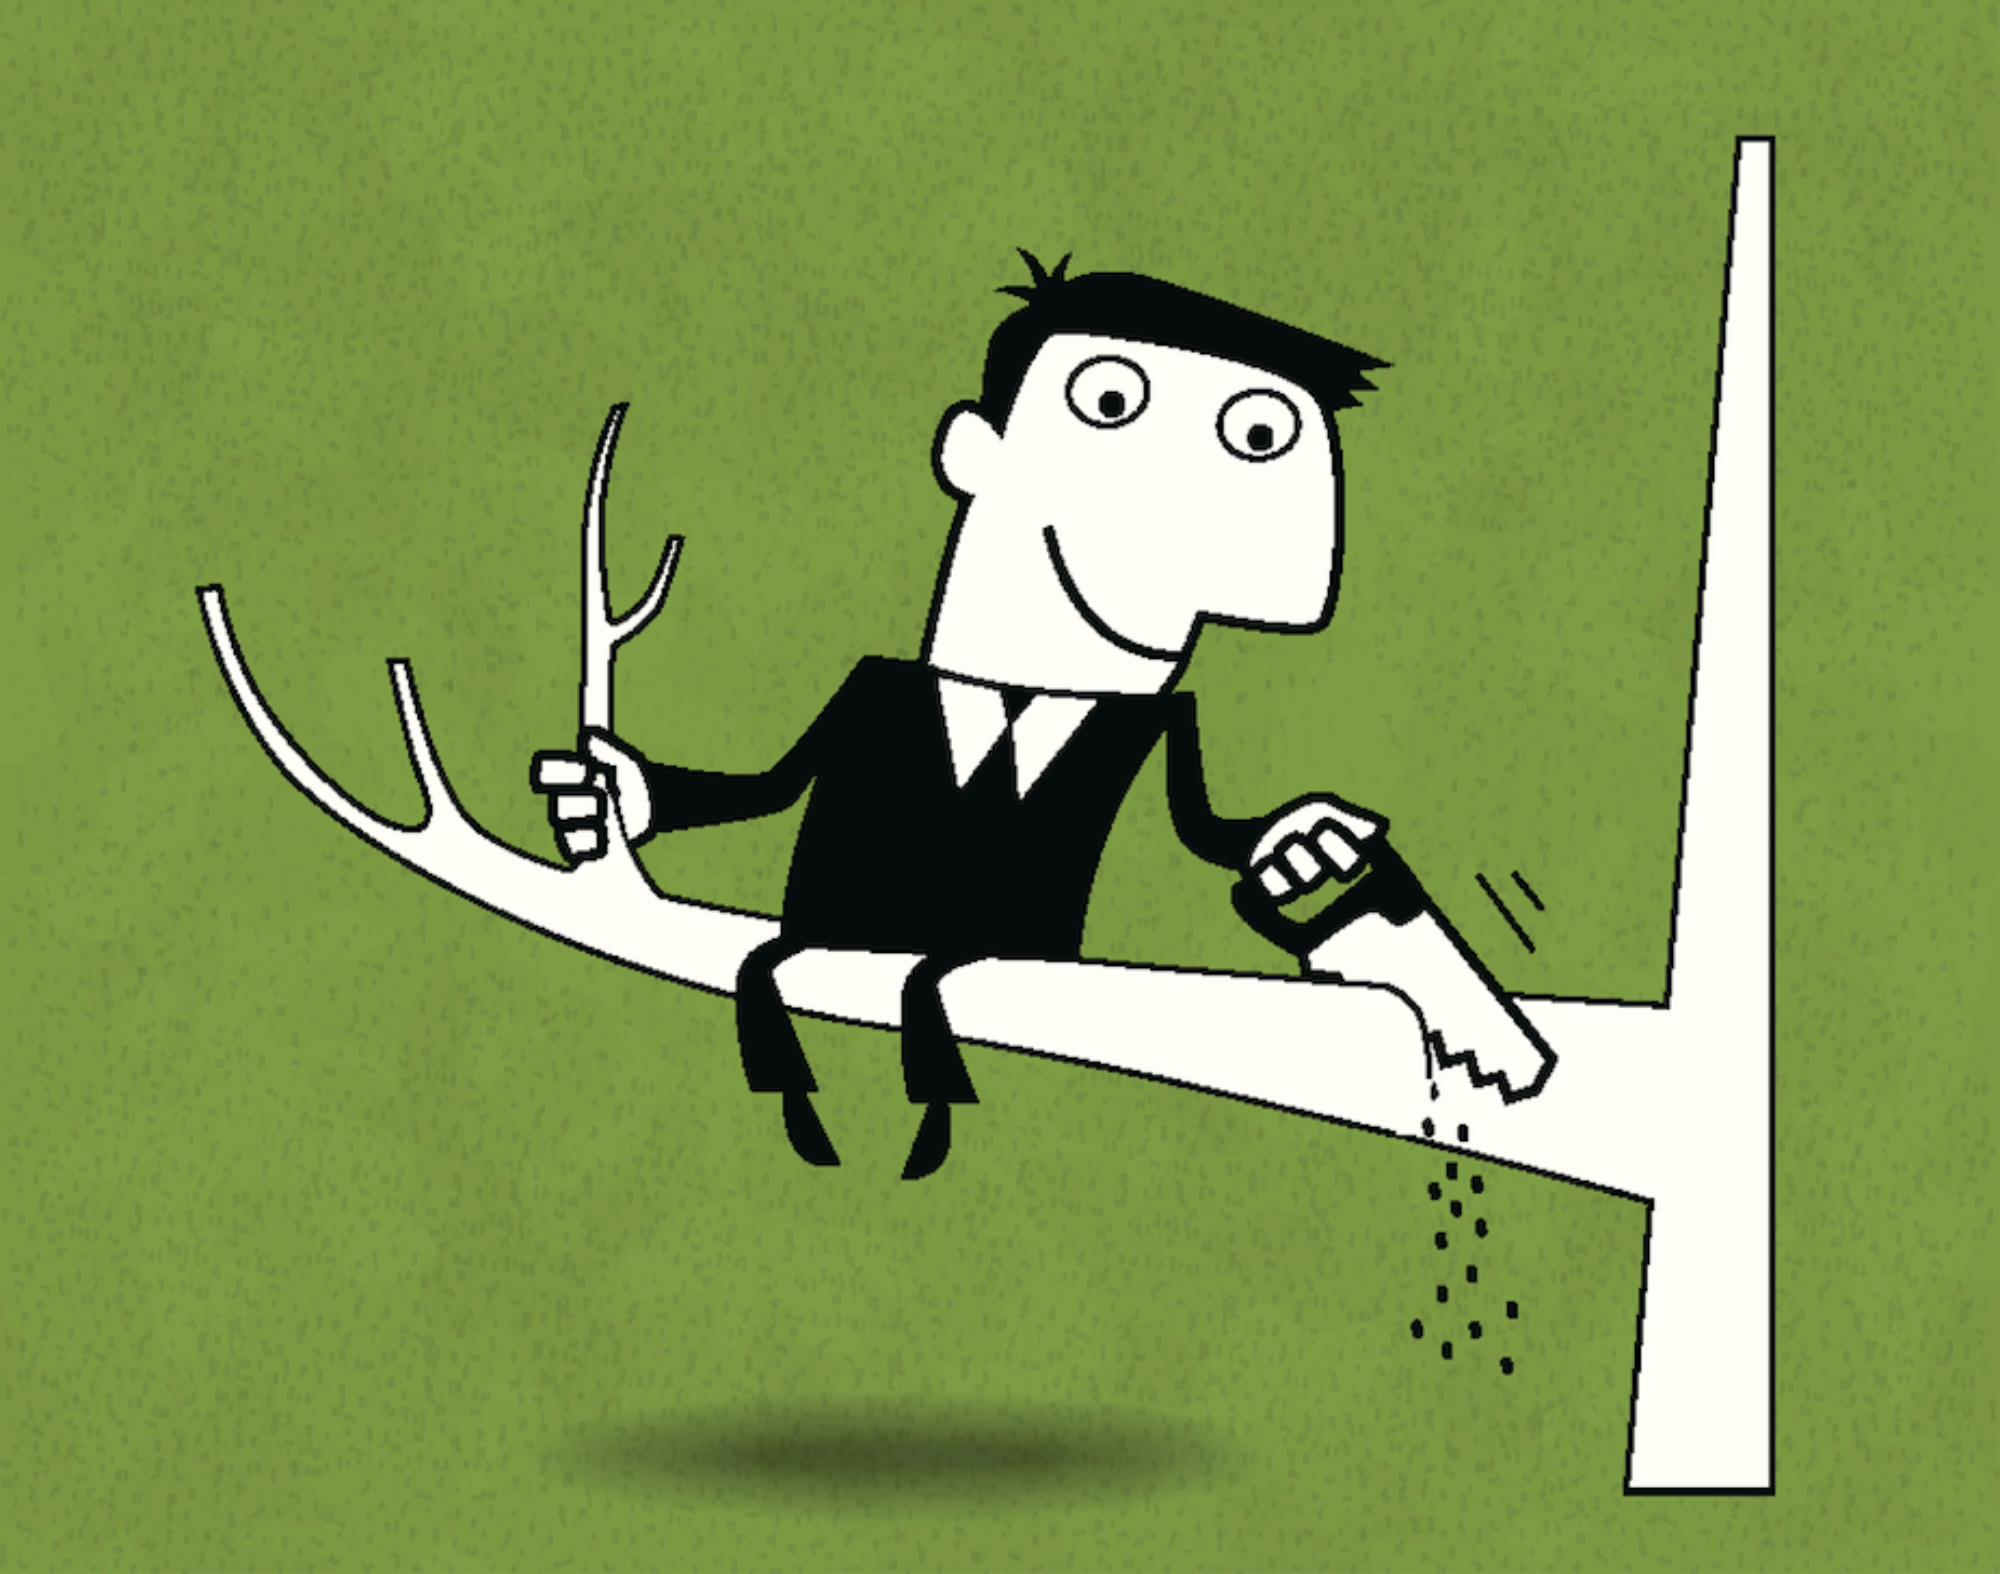 cartoon of a businessman cutting off the branch that he's sitting on